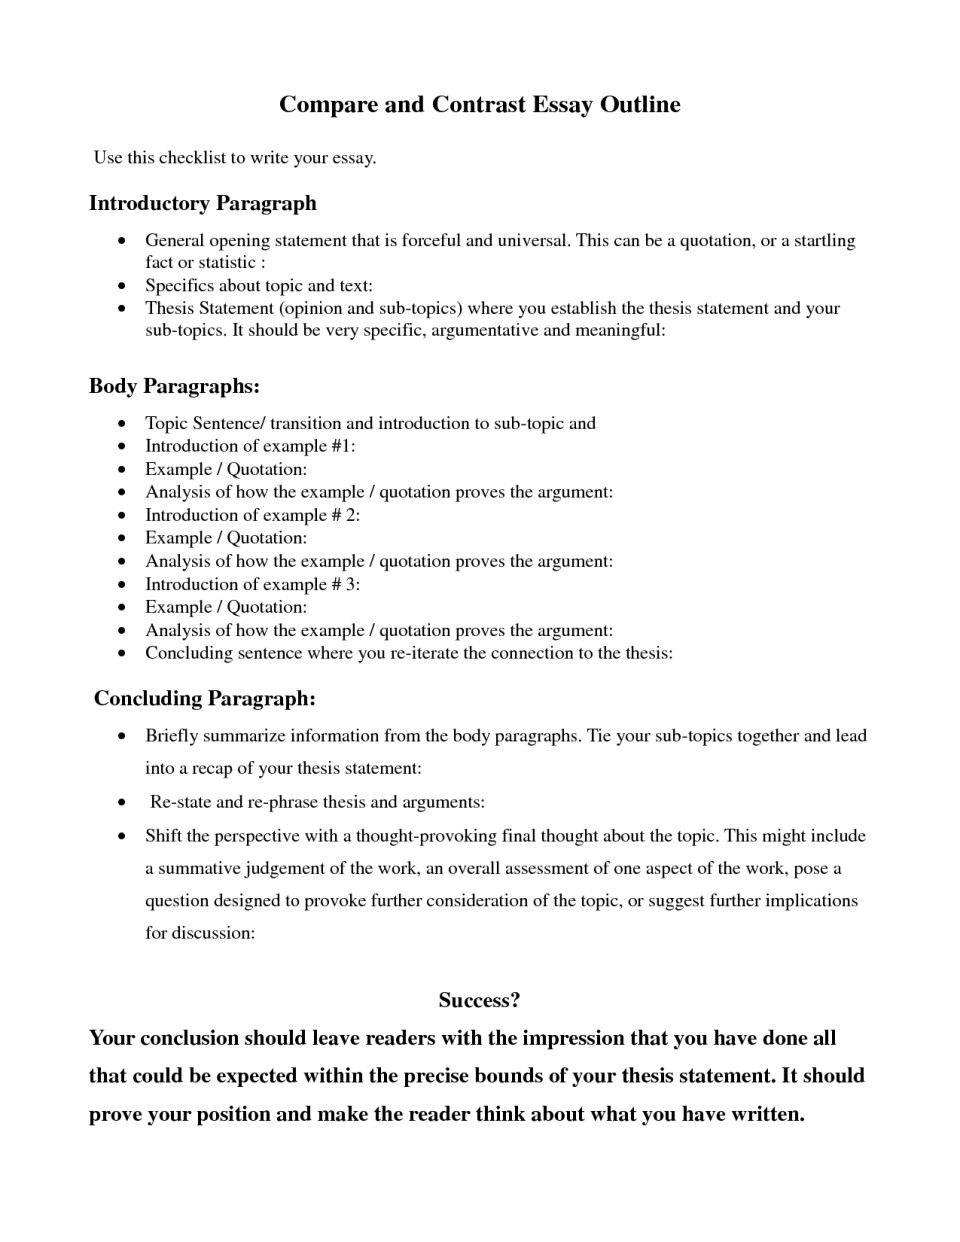 001 Essay Example How To Write Compare And Contrast Outstanding A Outline Comparison Ppt Middle School 960